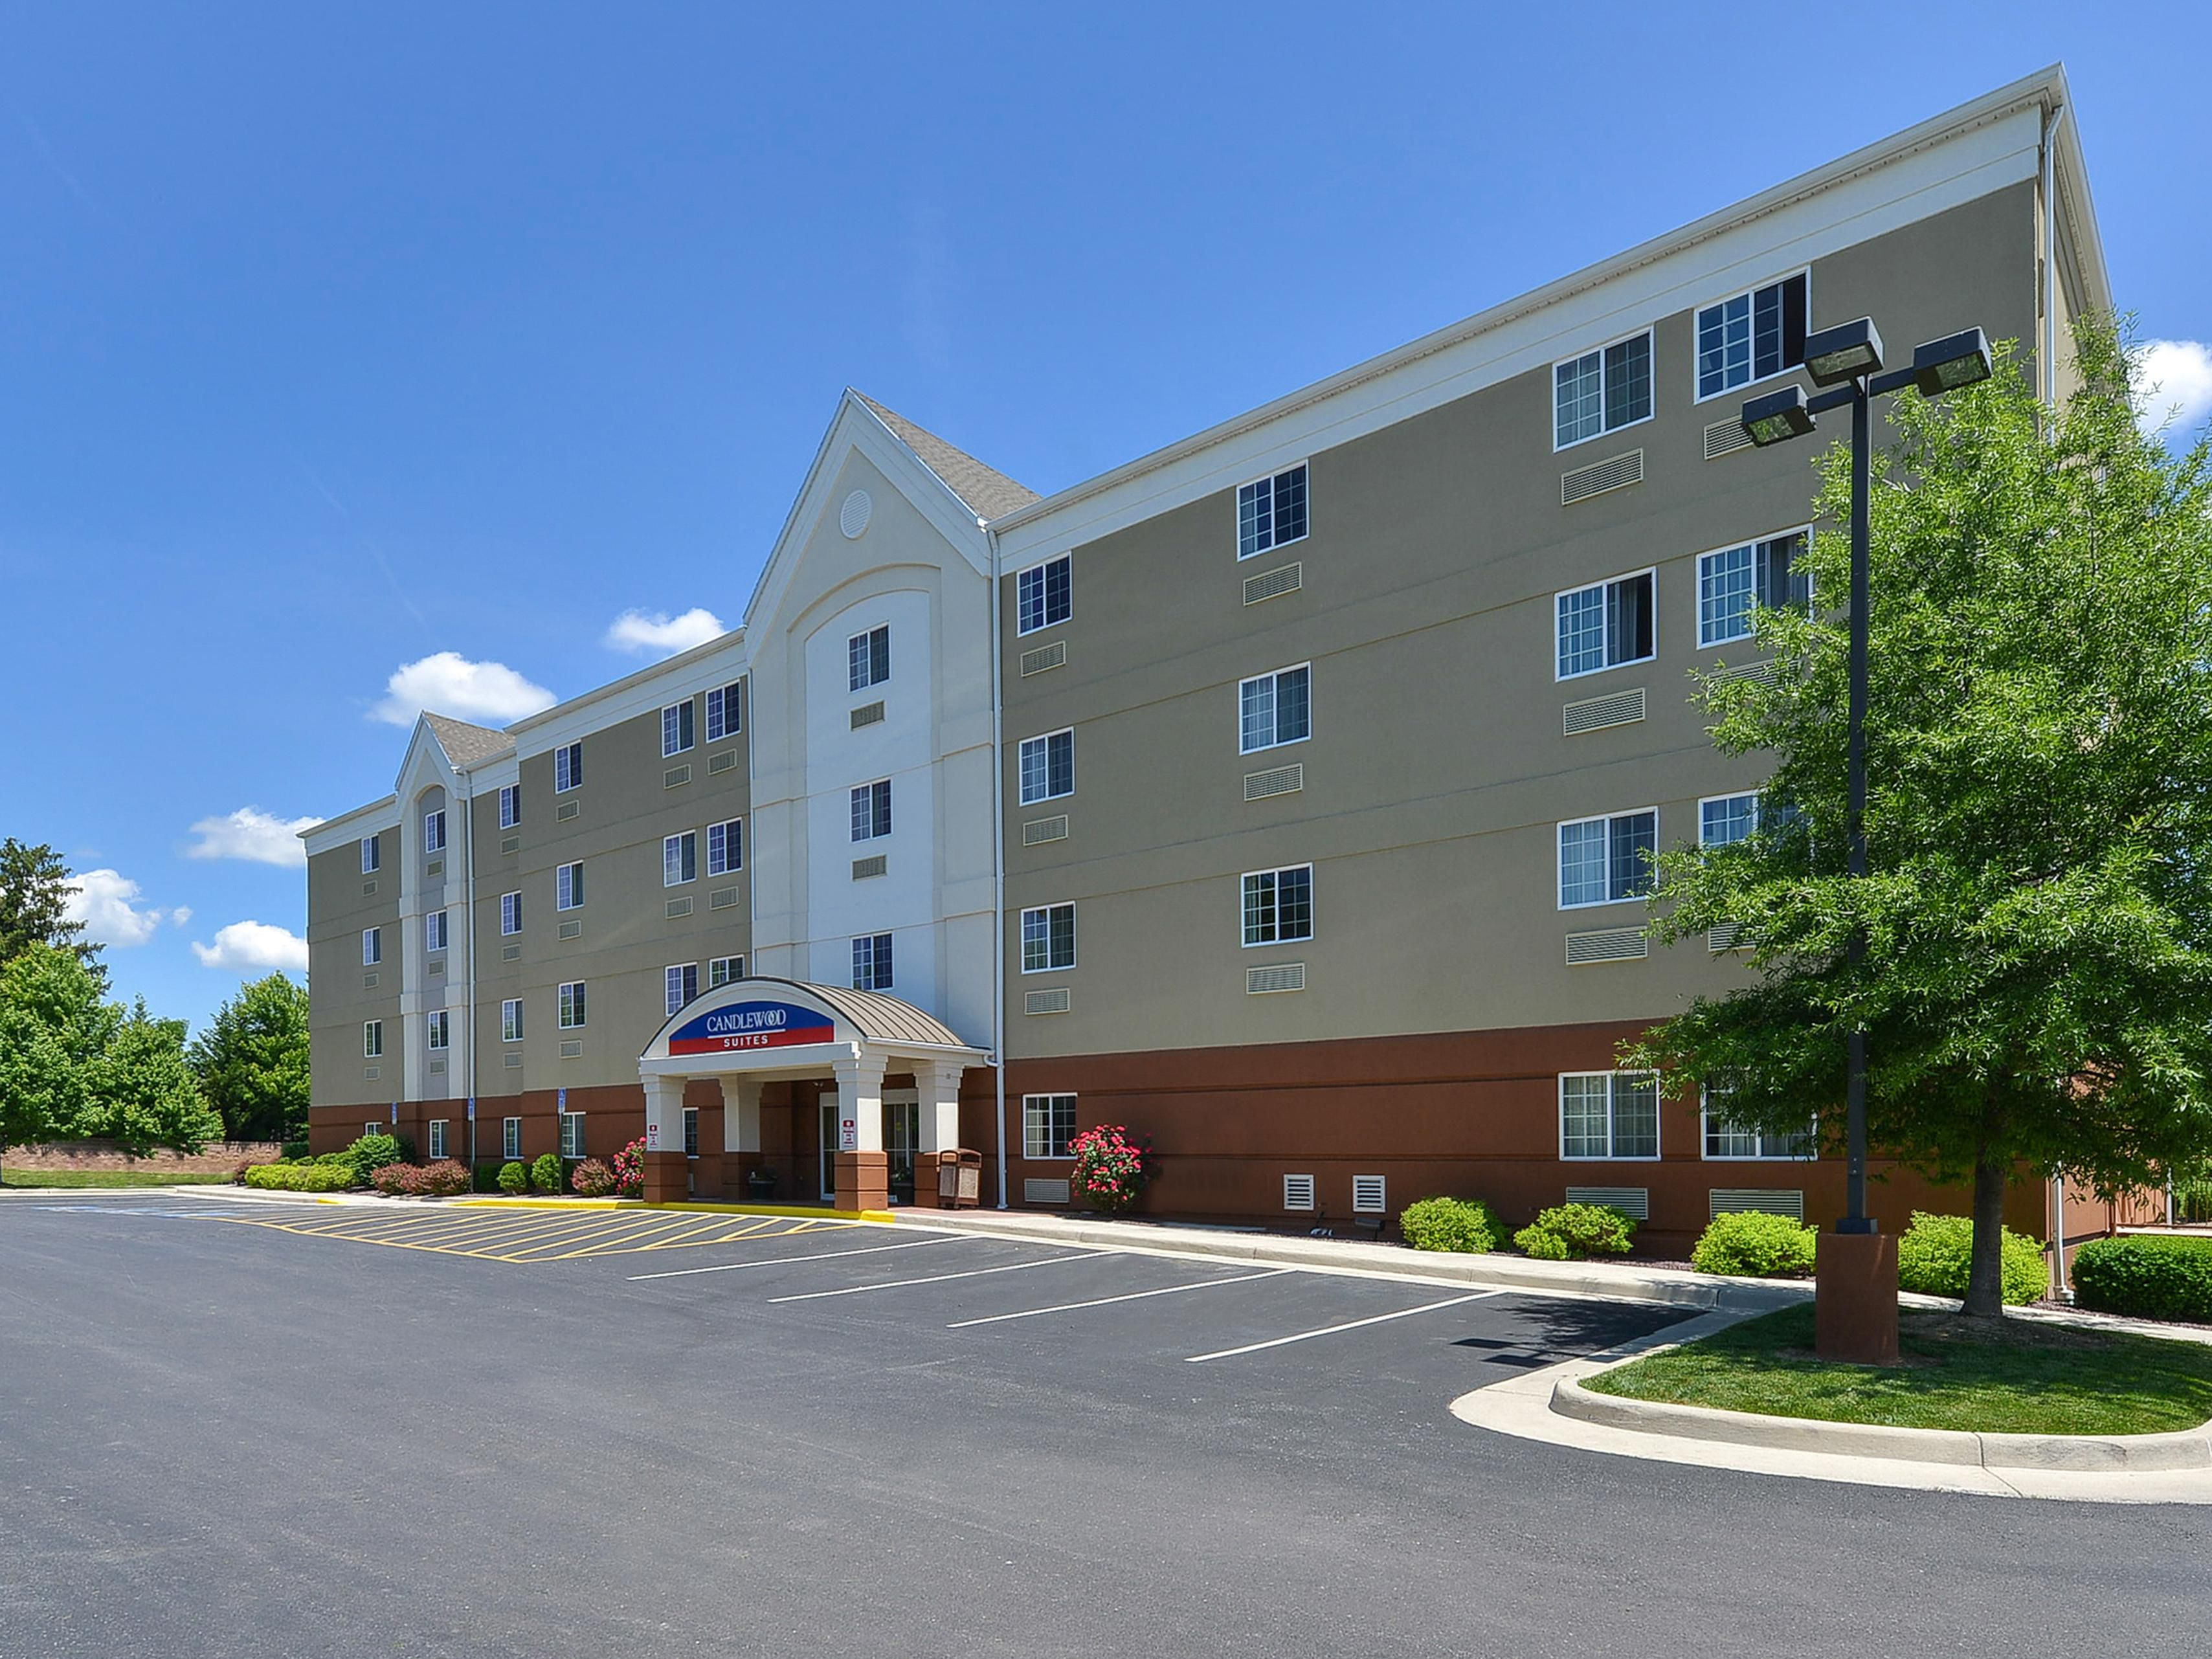 Candlewood Suites Winchester Extended Stay Hotel In Virginia